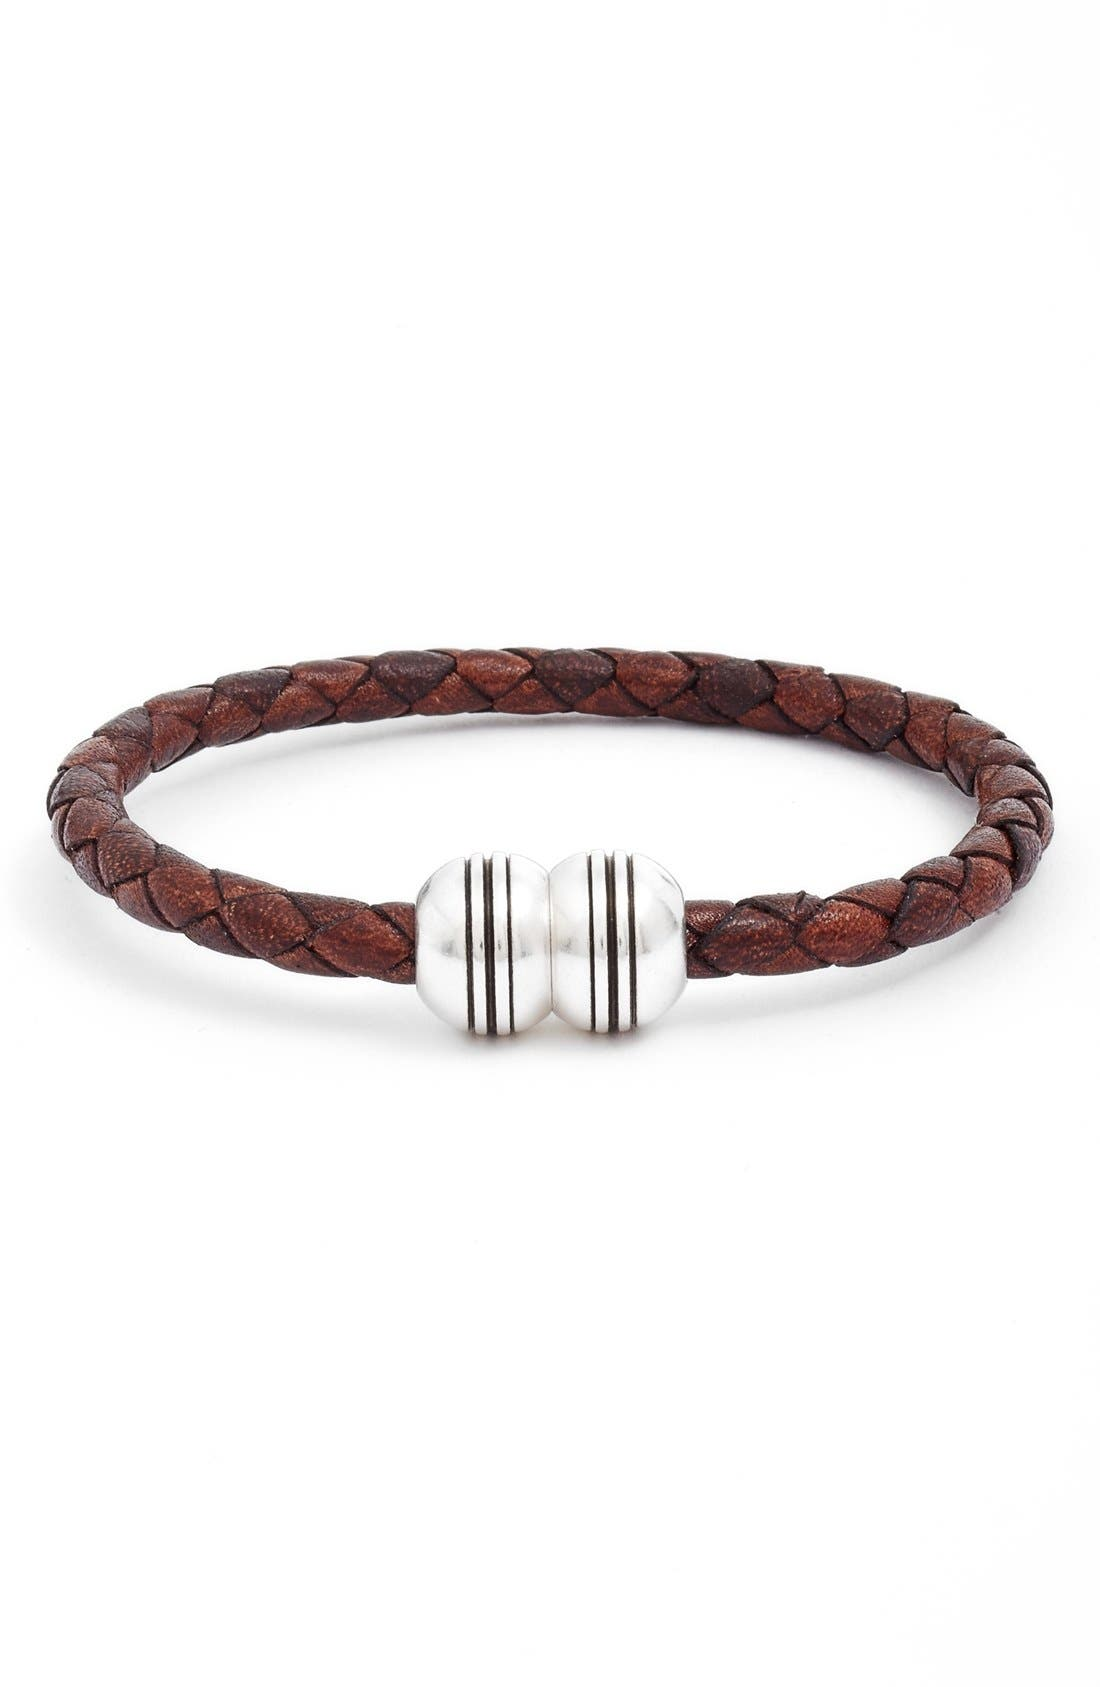 Braided Leather Bracelet,                         Main,                         color, Brown